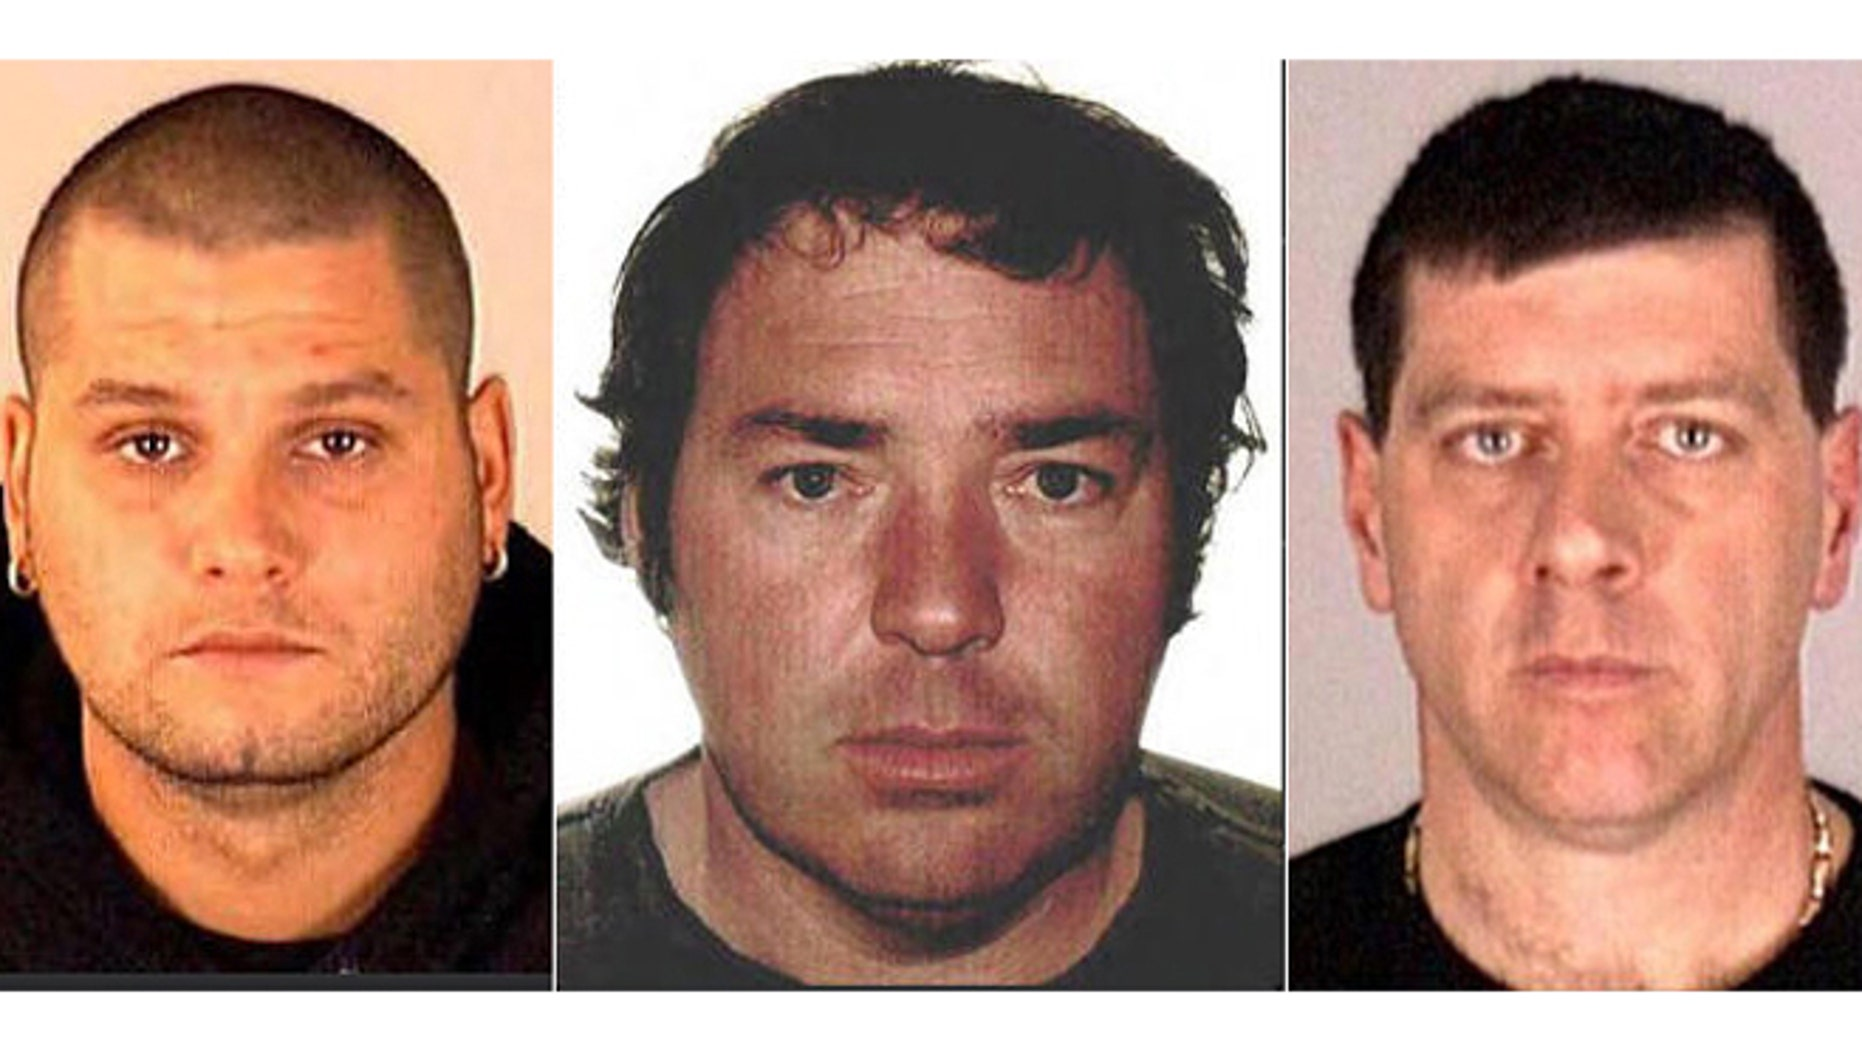 June 22, 2014: These images provided by Interpol show Yves Denis, 35, left, Serge Pomerleau, 49, center and  Denis Lefebvre, 53, in undated police handout photos. The three inmates, who escaped a jail near Quebec City by helicopter on June 7, were arrested at a home in Montreal, Quebec provincial police said.